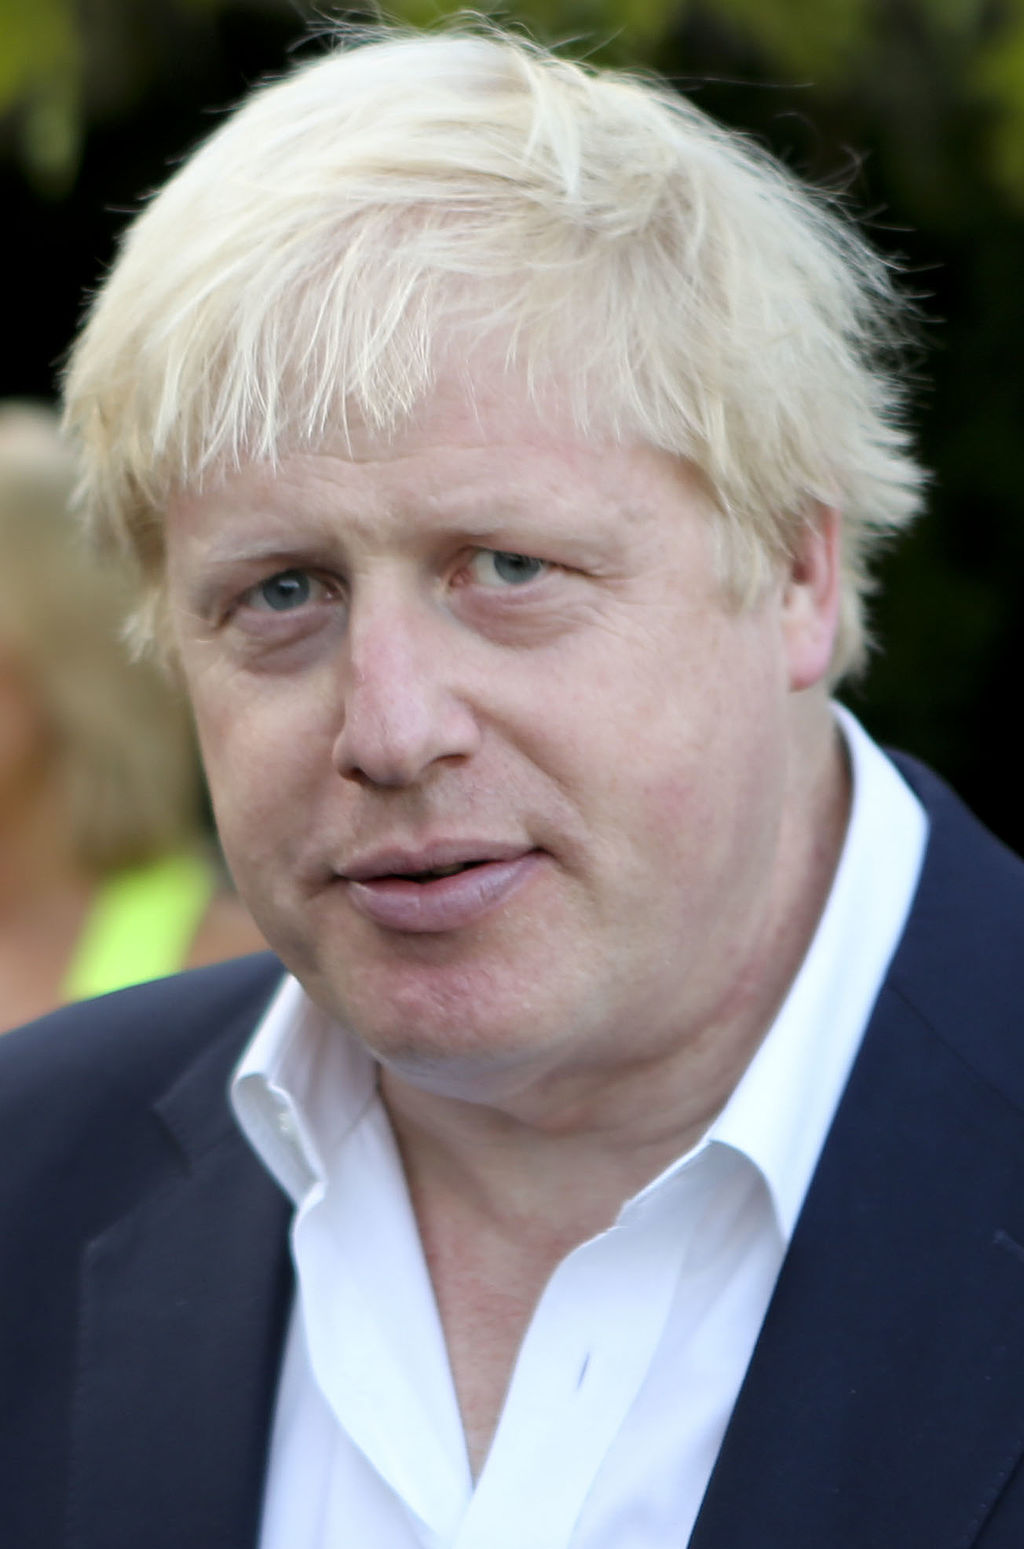 G-A-Y Owner: Boris Johnson is a c**t